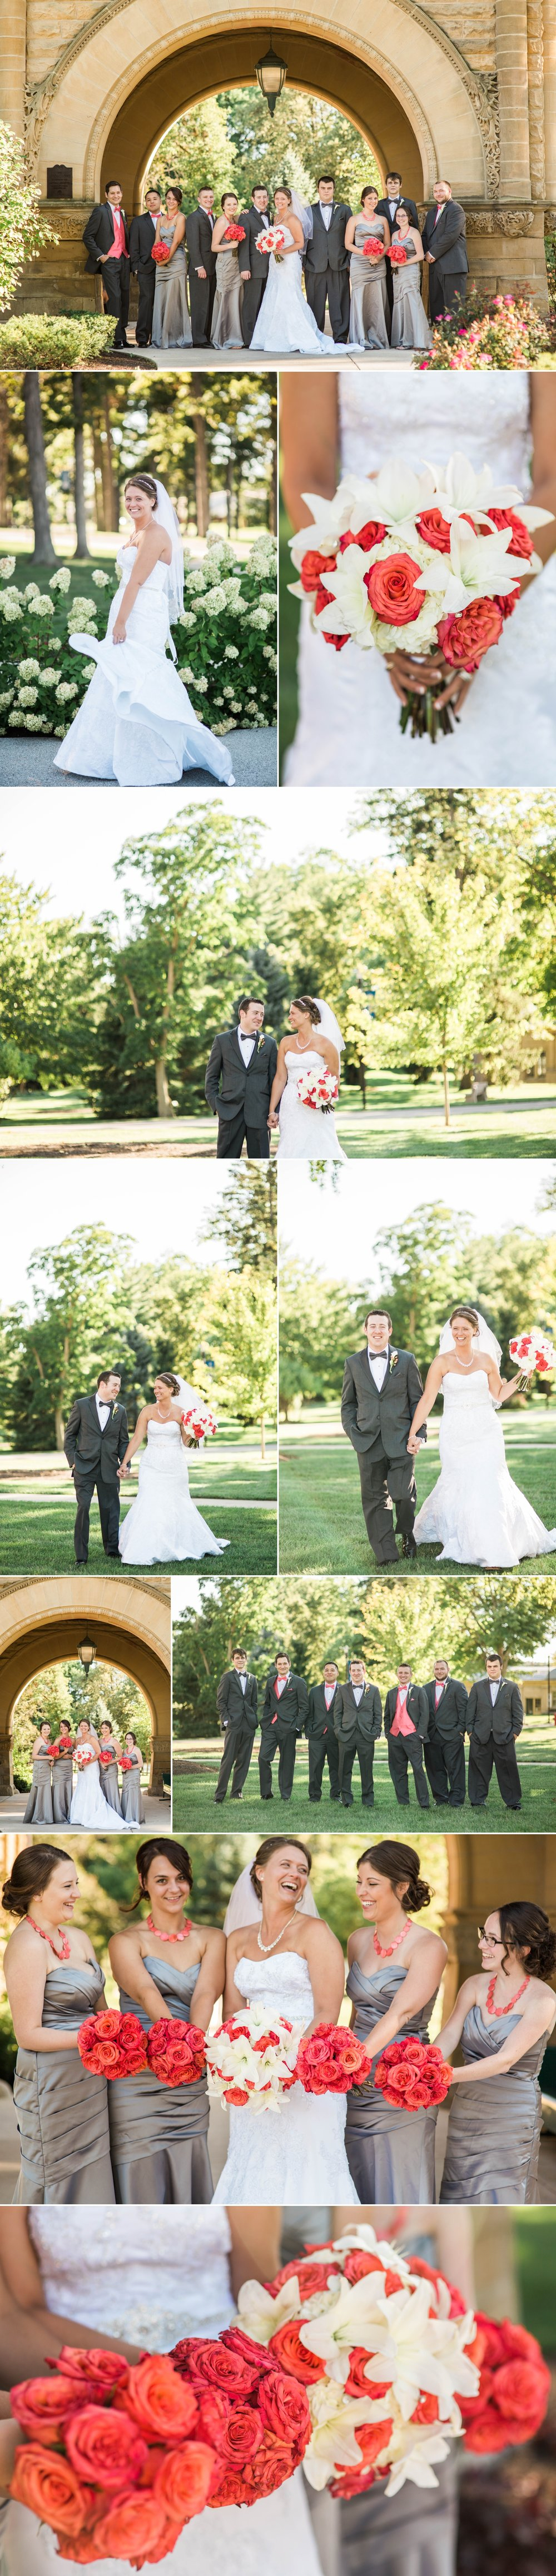 fort wayne-indiana-wedding-bride-groom-ceremony-wedding day-love-ceruti's-morgan ruth photography-university of st francis-brookside mansion